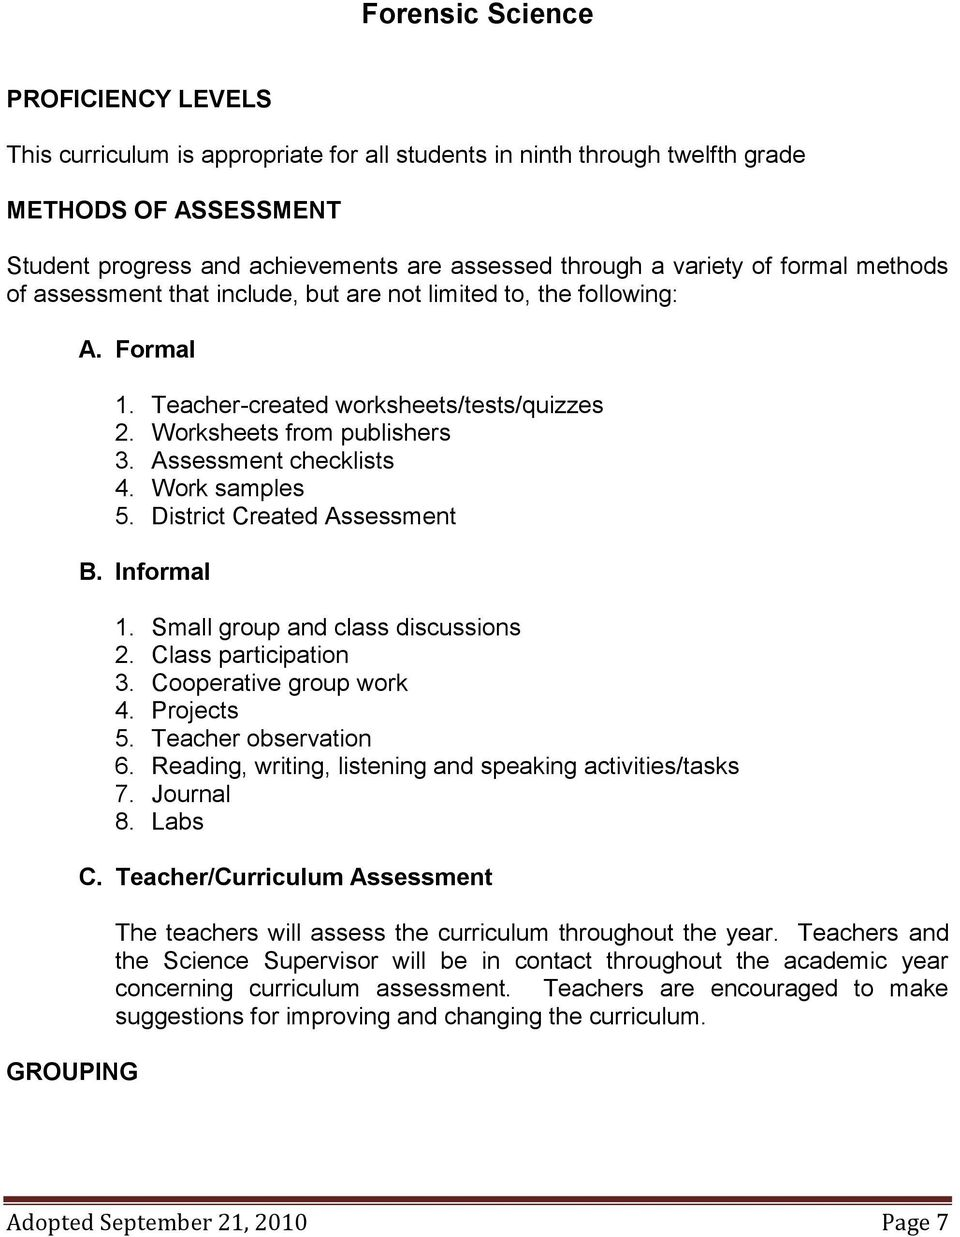 Assessment checklists 4. Work samples 5. District Created Assessment B. Informal 1. Small group and class discussions 2. Class participation 3. Cooperative group work 4. Projects 5.